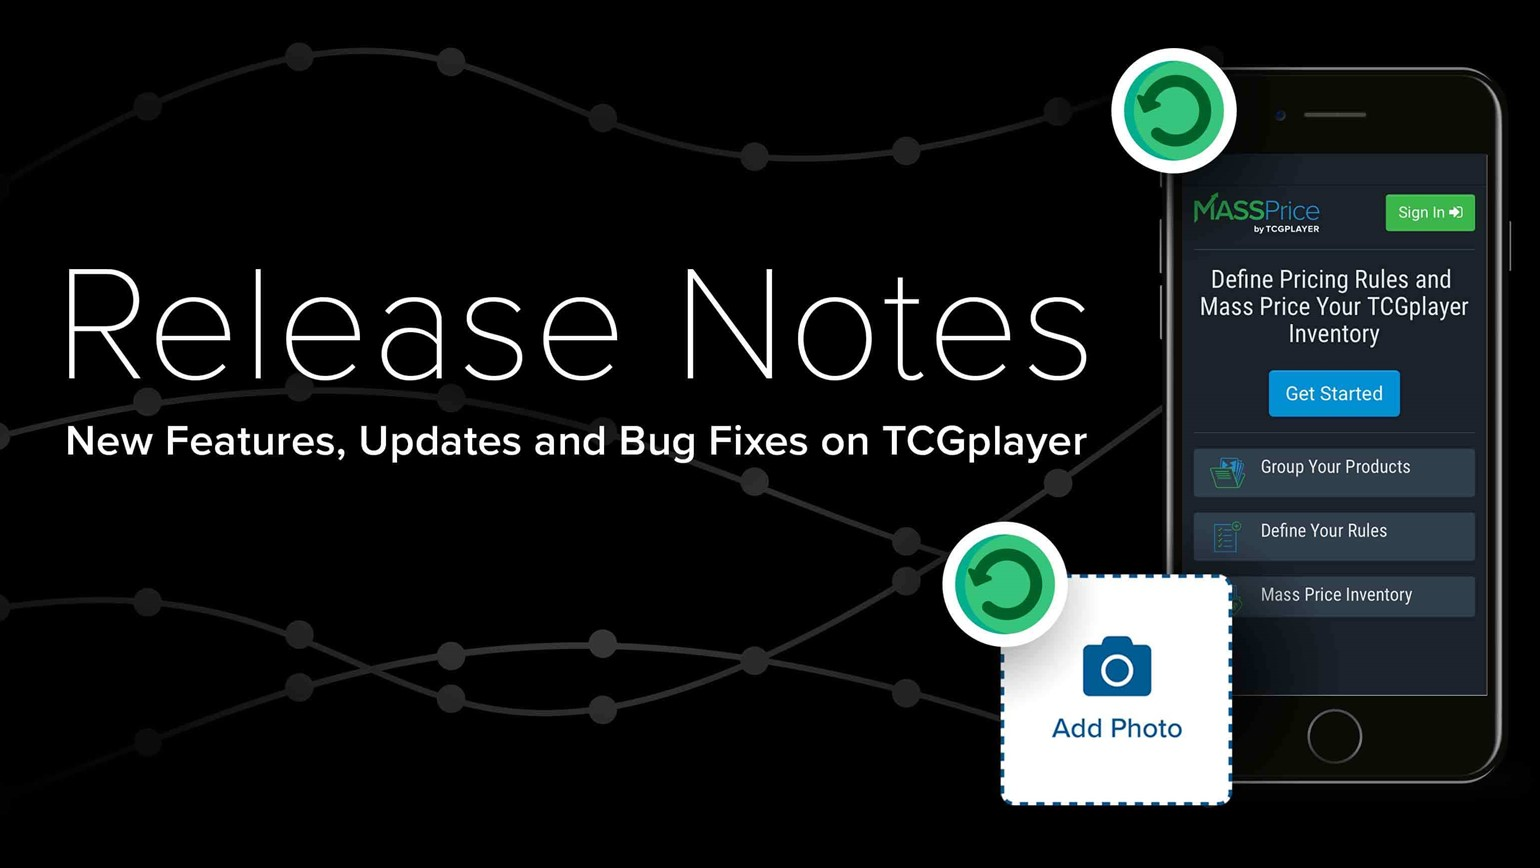 New Features, Updates and Bug Fixes on TCGplayer (9/5/18)